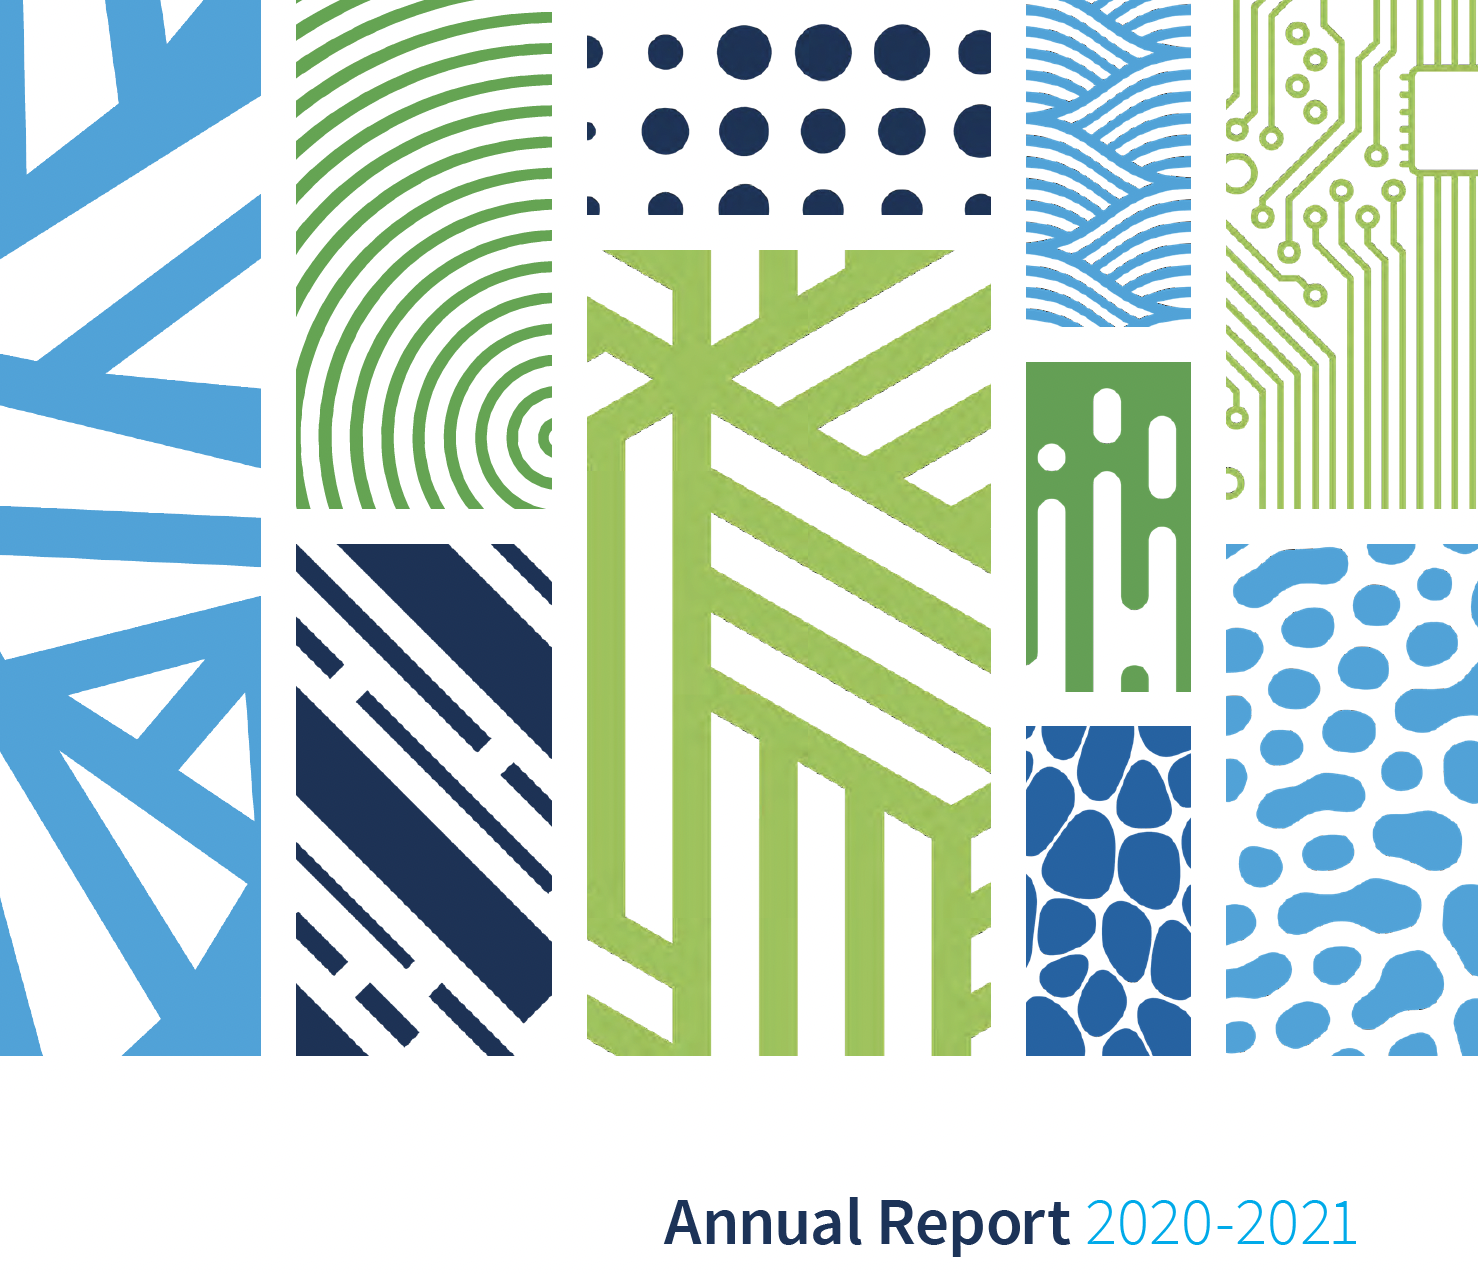 Cover page for NSBI Annual Report 2020-2021